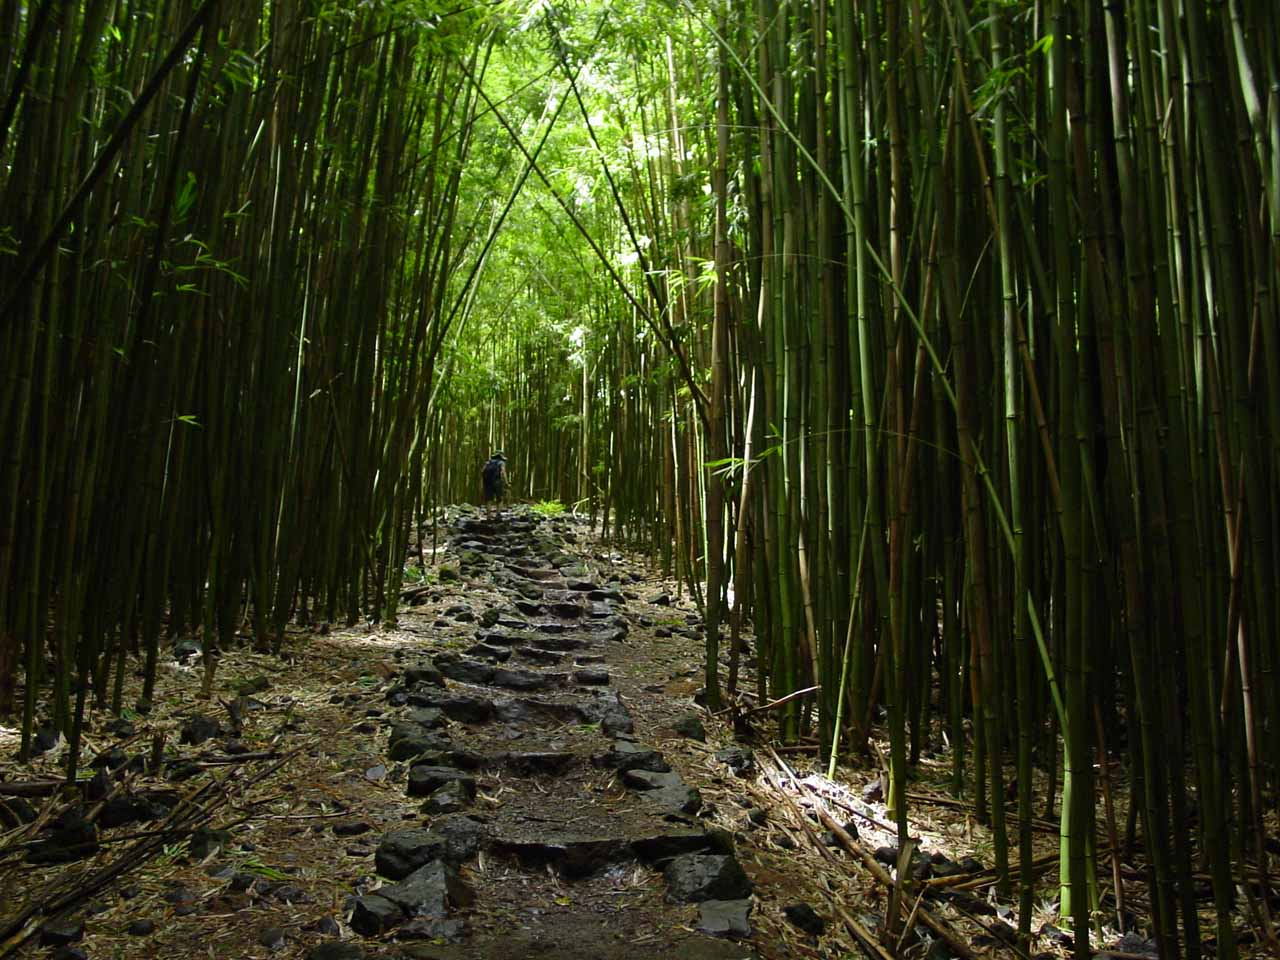 Julie up ahead deep in the bamboo forest